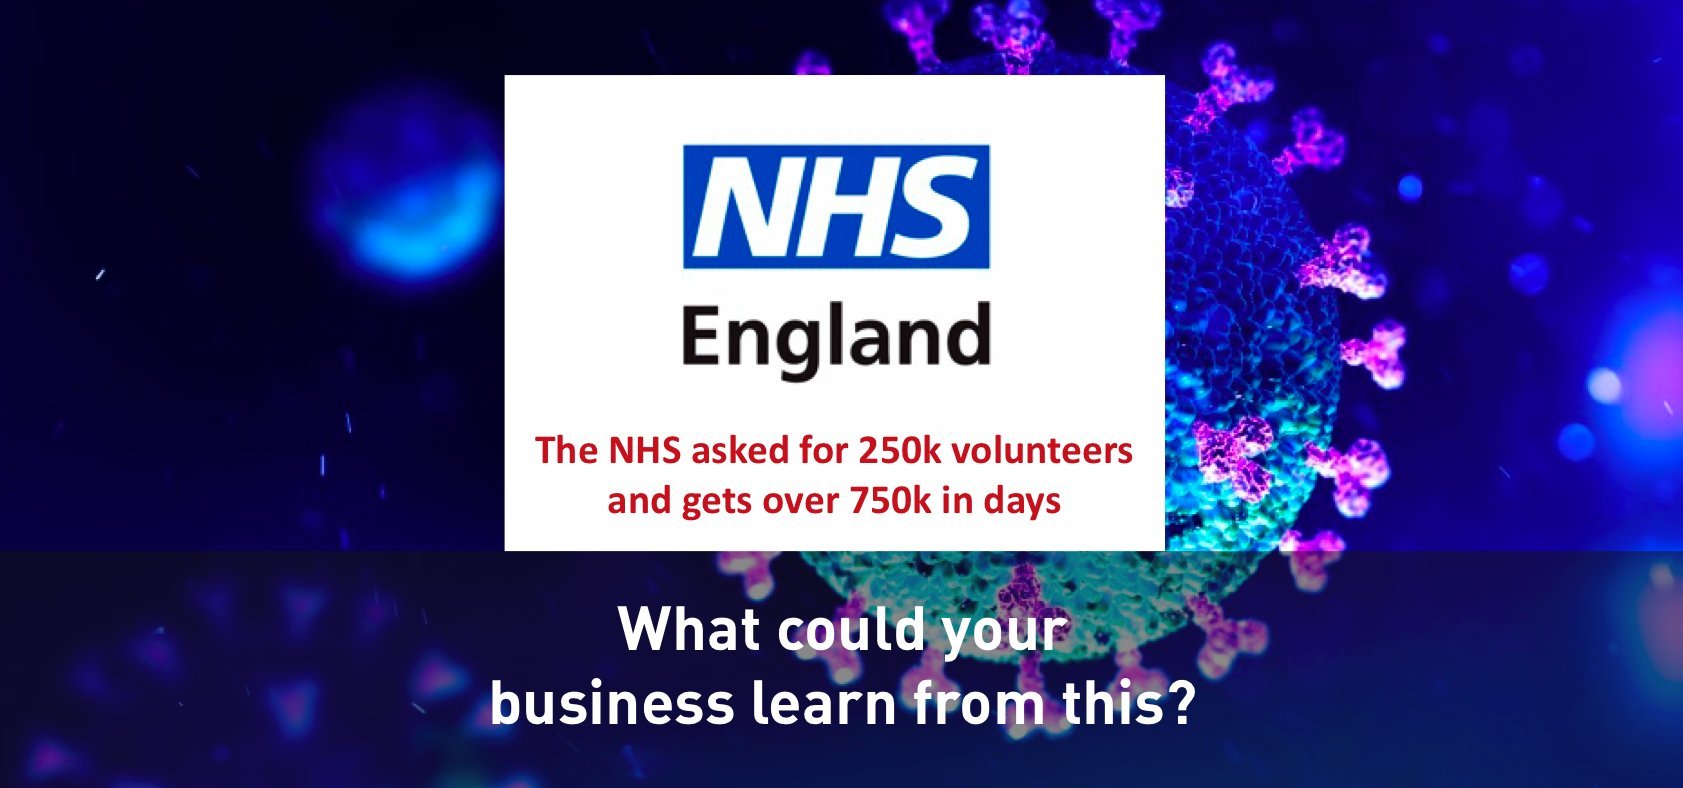 PM asks for 250k NHS volunteers and over 750k are recruited in days